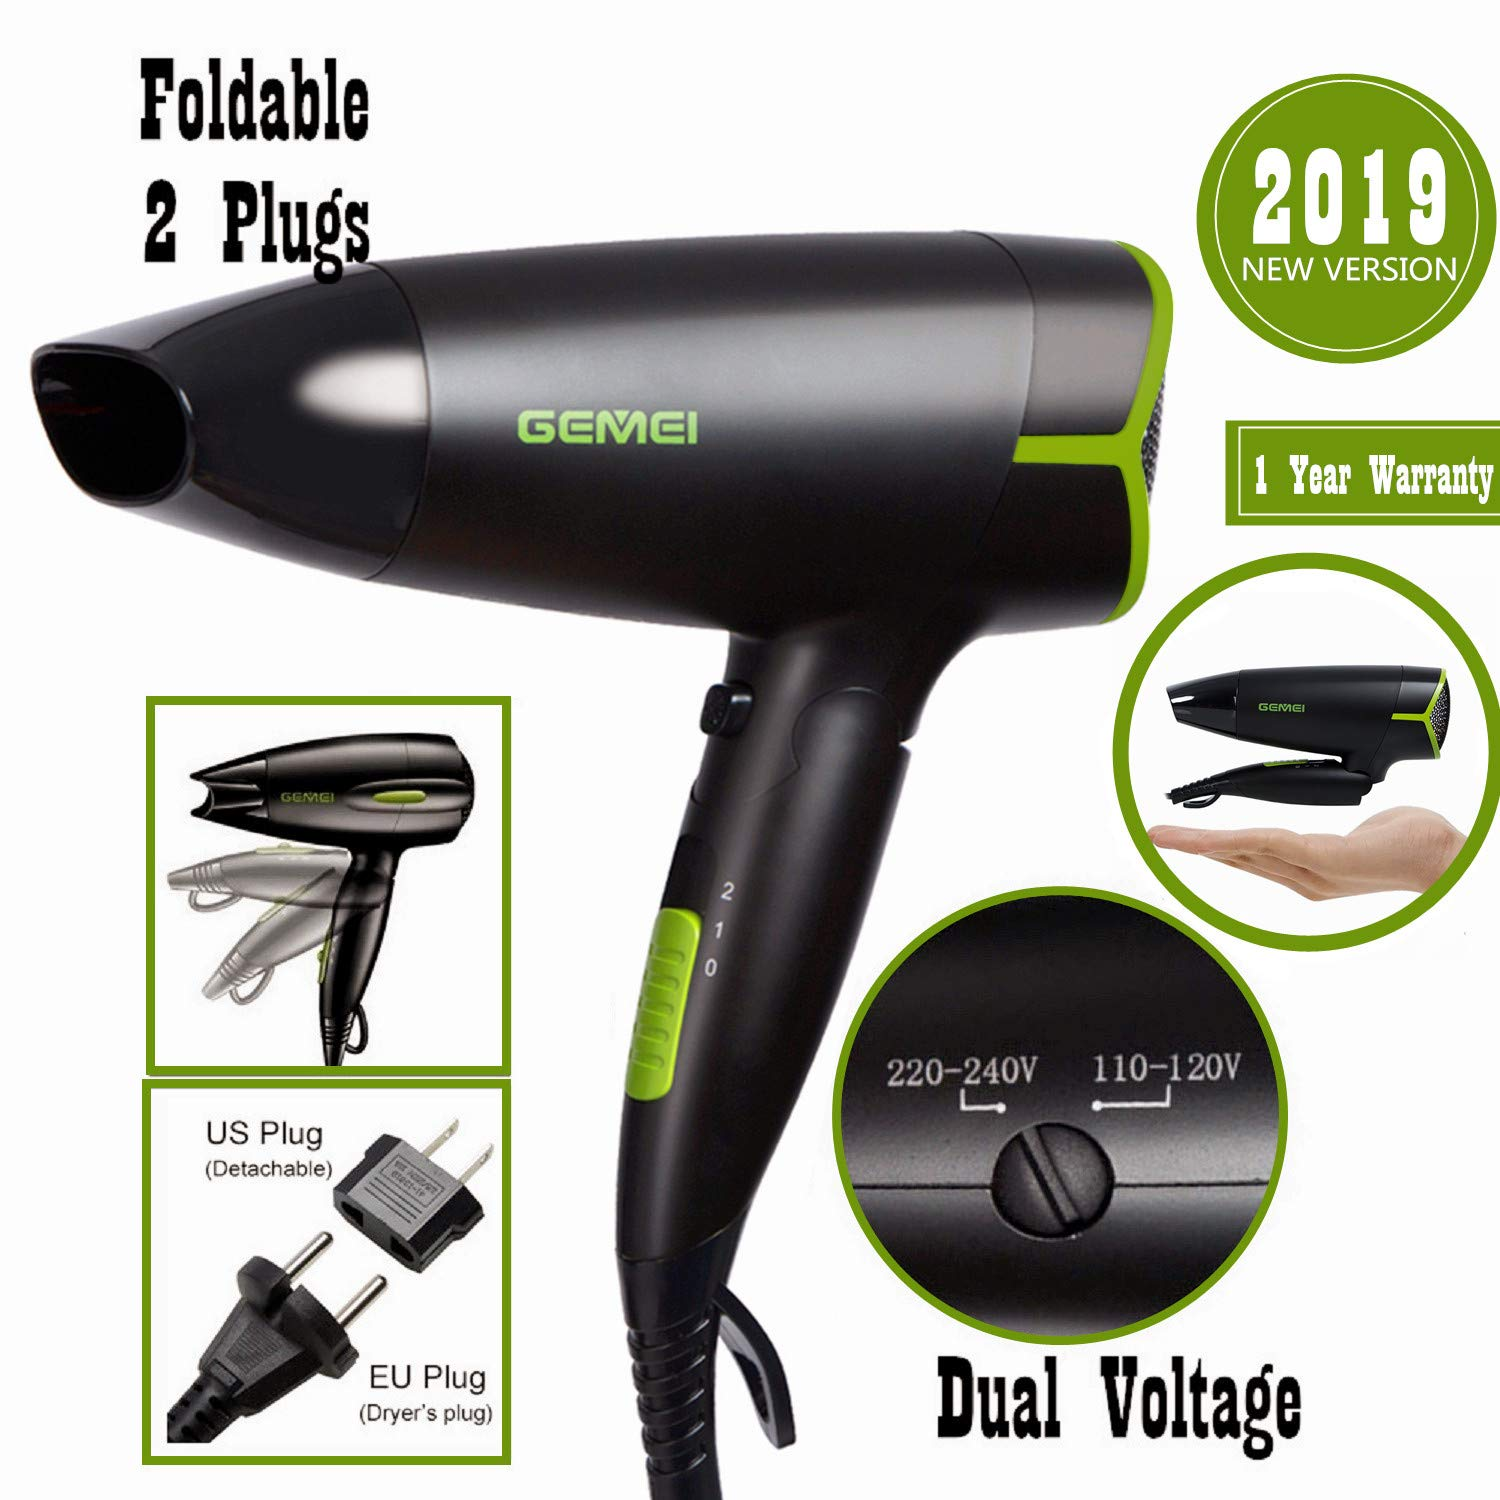 Folding Blow Dryer for Travel,Dual Voltage Hair Dryer,1200 to 1600W Professional Compact Small Negative Ionic Lightweight Worldwide 100-240V Hair Dryer,Cool Shot Button,Mini 9x10 Inch,Gifts for Women by Mannice